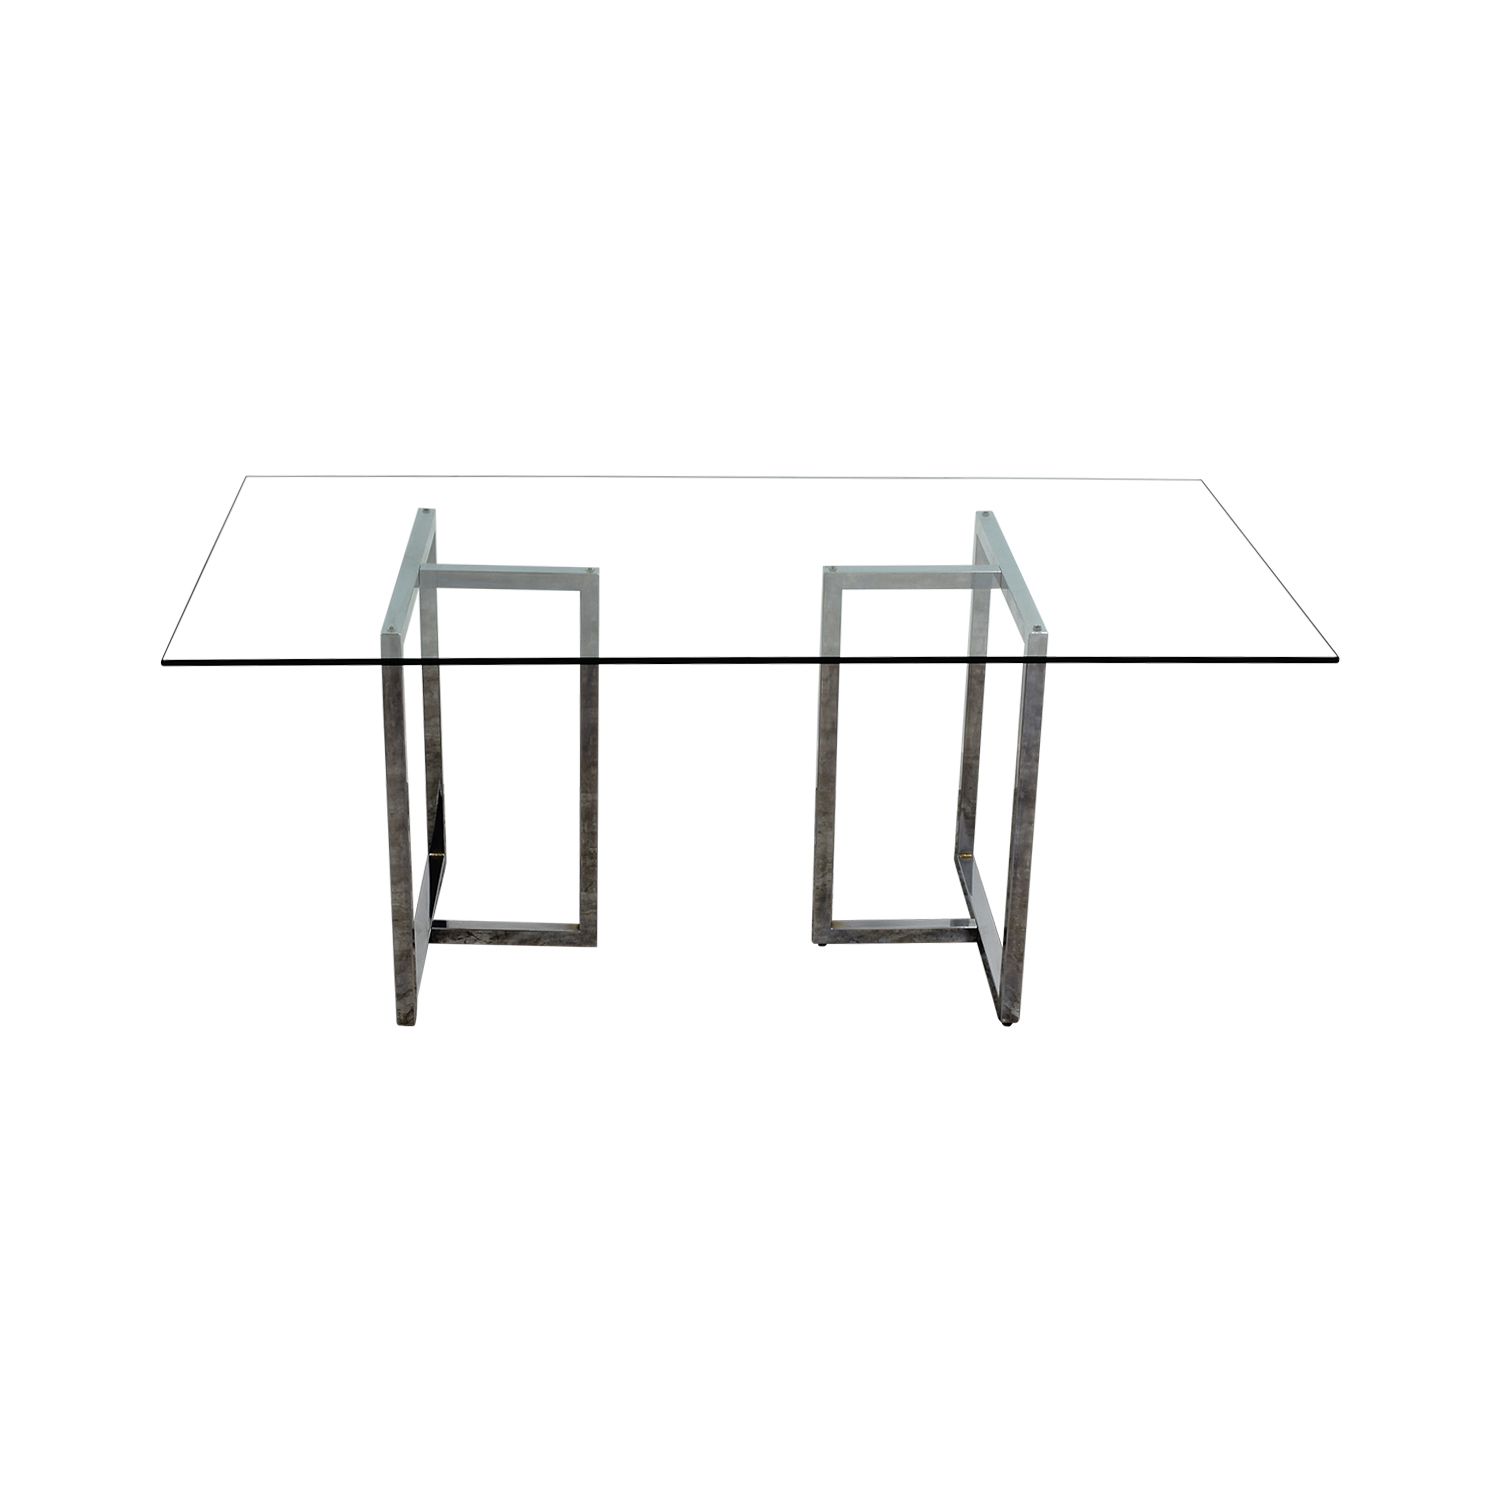 CB2 CB2 Silverado Rectangular Glass and Chrome Dining Table discount